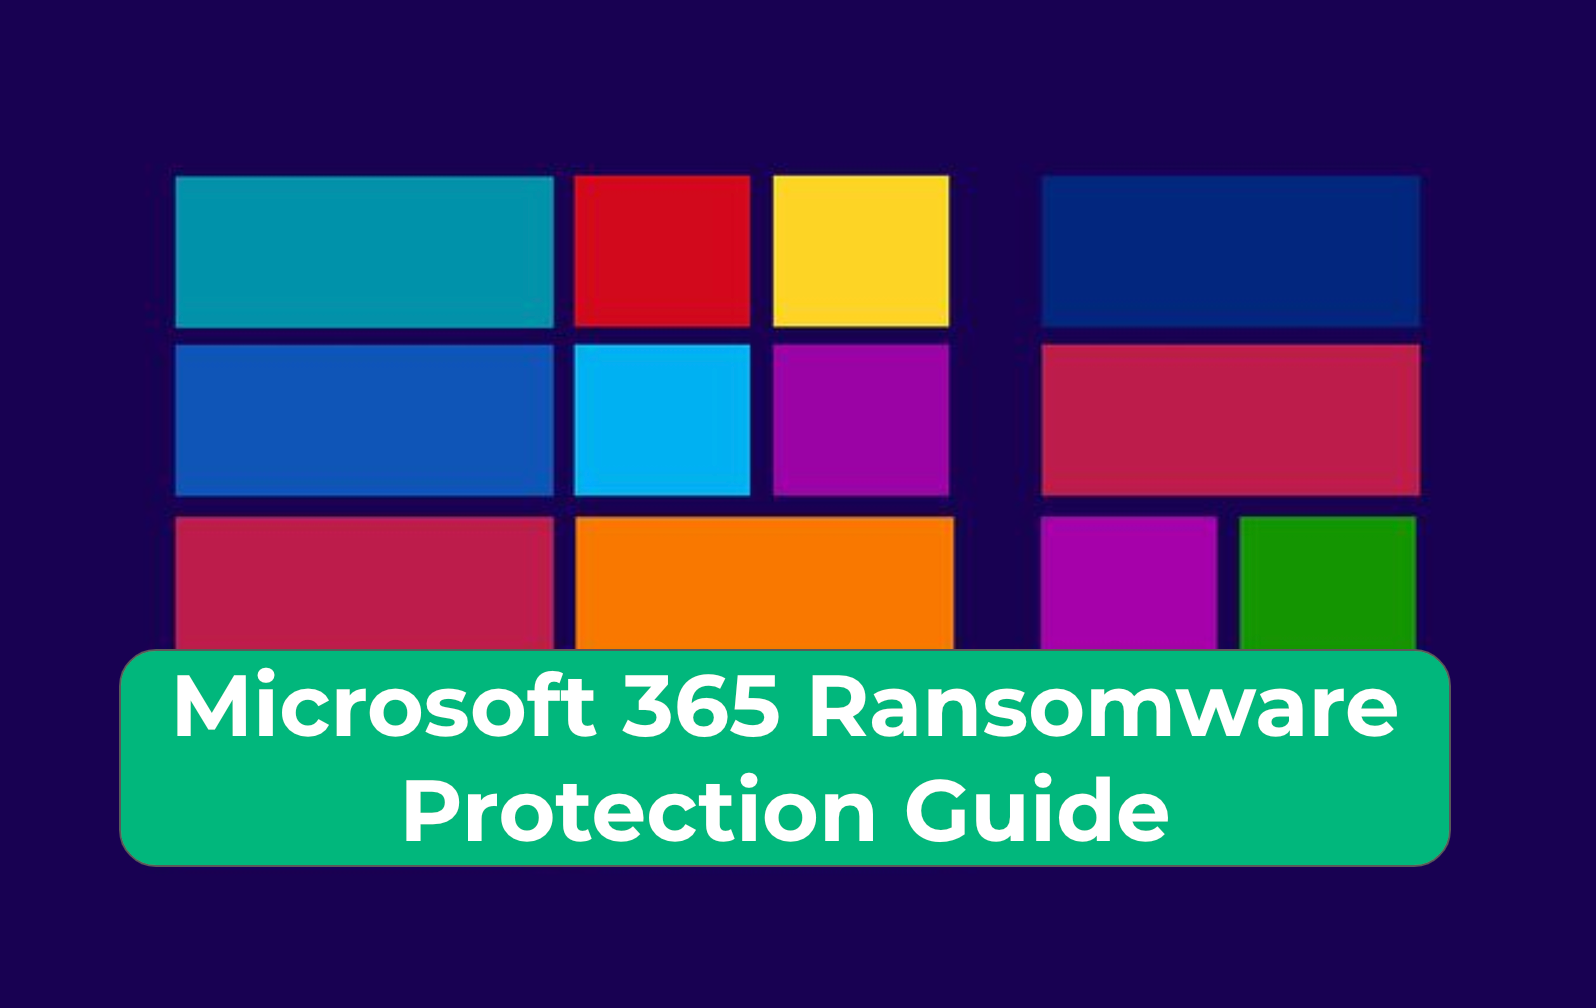 Microsoft 365 Ransomware Protection Guide